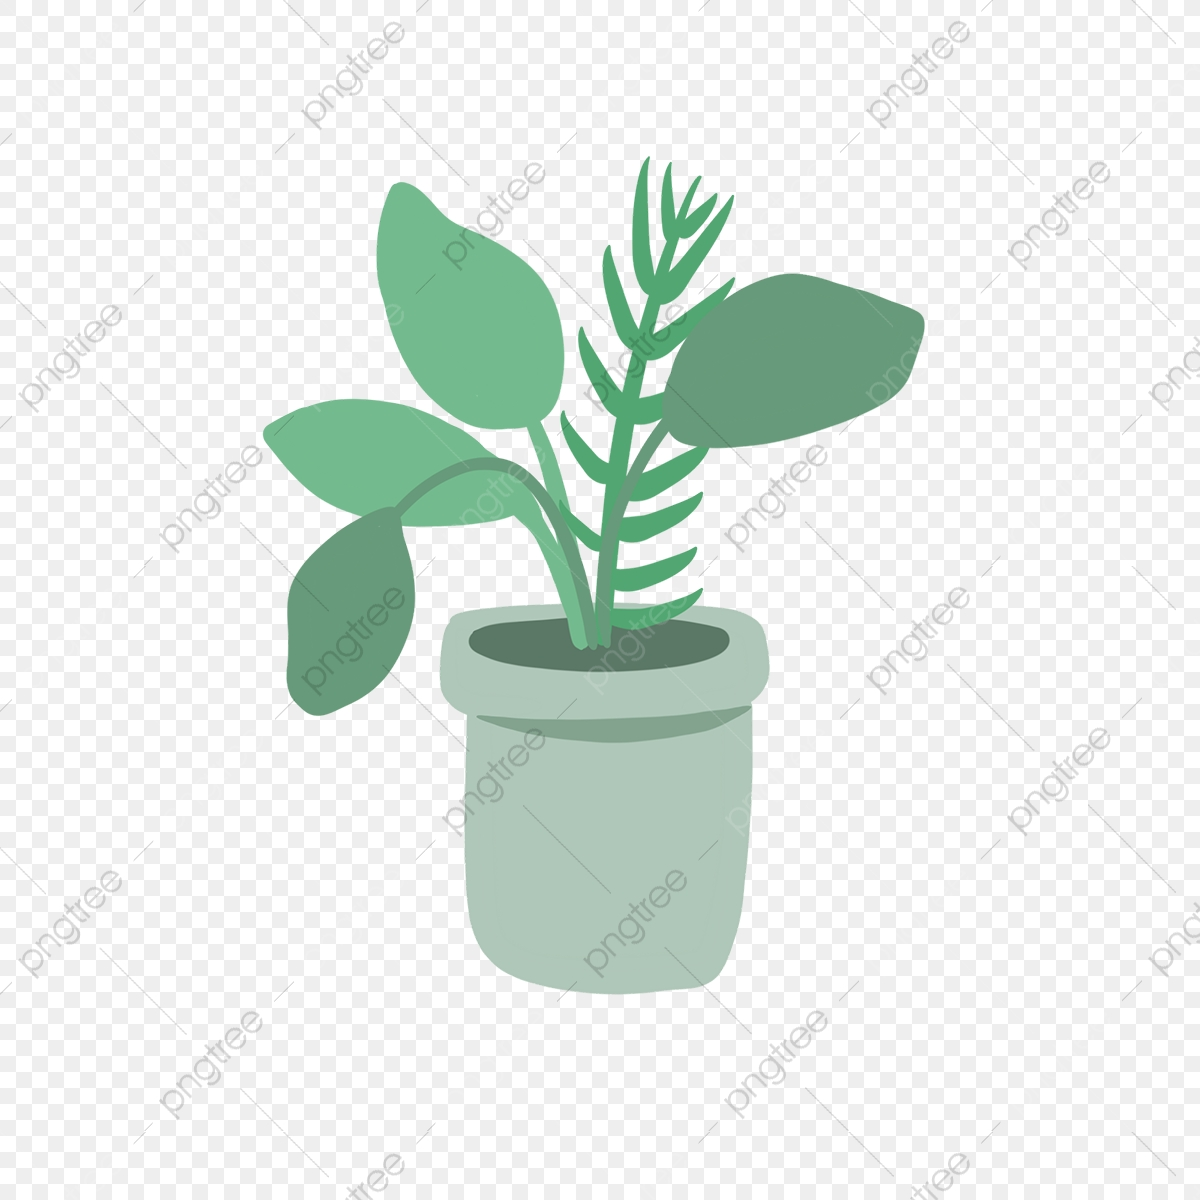 Hand Drawn Cute Green Pot Plants Garden Leaves Drawing Png Transparent Clipart Image And Psd File For Free Download